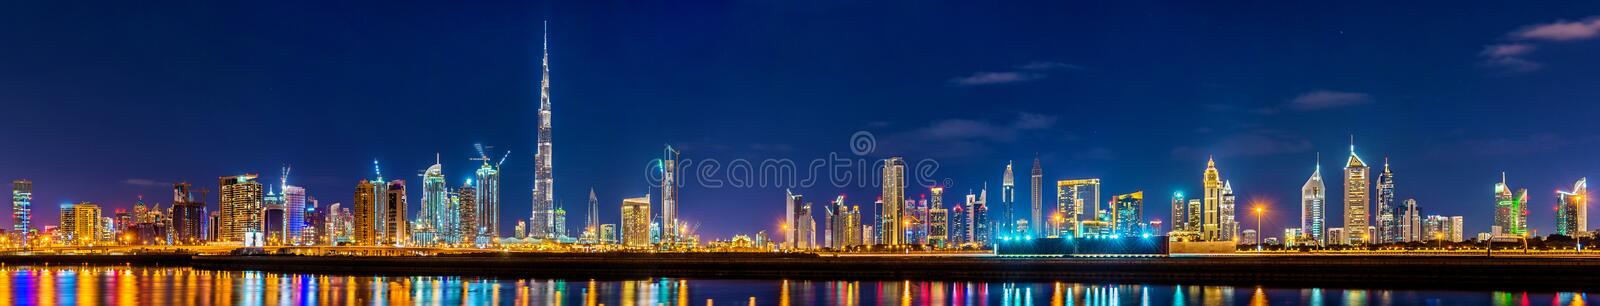 Panorama da noite de Dubai do centro fotos de stock